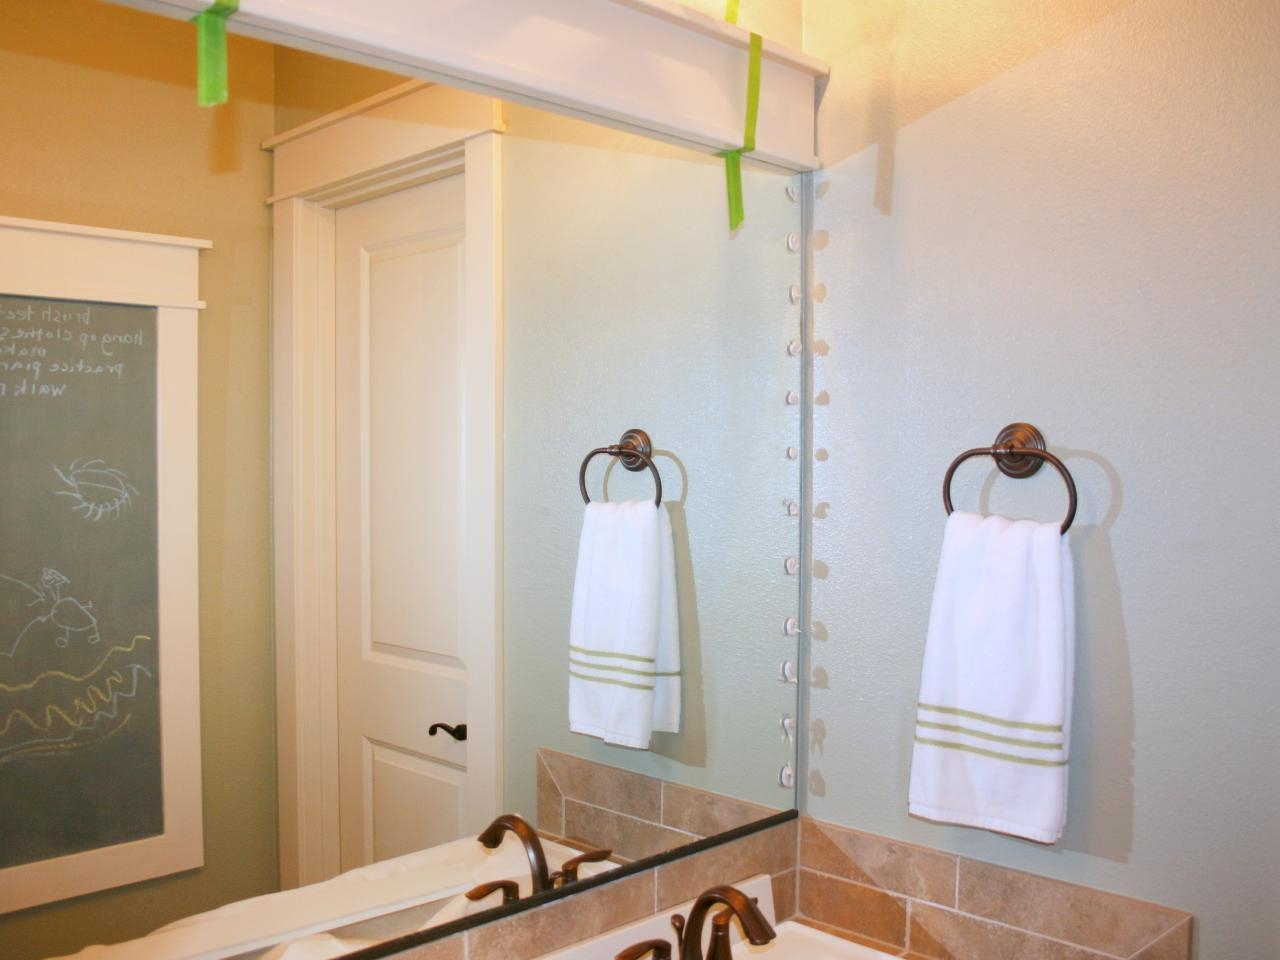 How To Frame A Mirror | Hgtv In Wall Mirrors For Bathrooms (View 7 of 20)